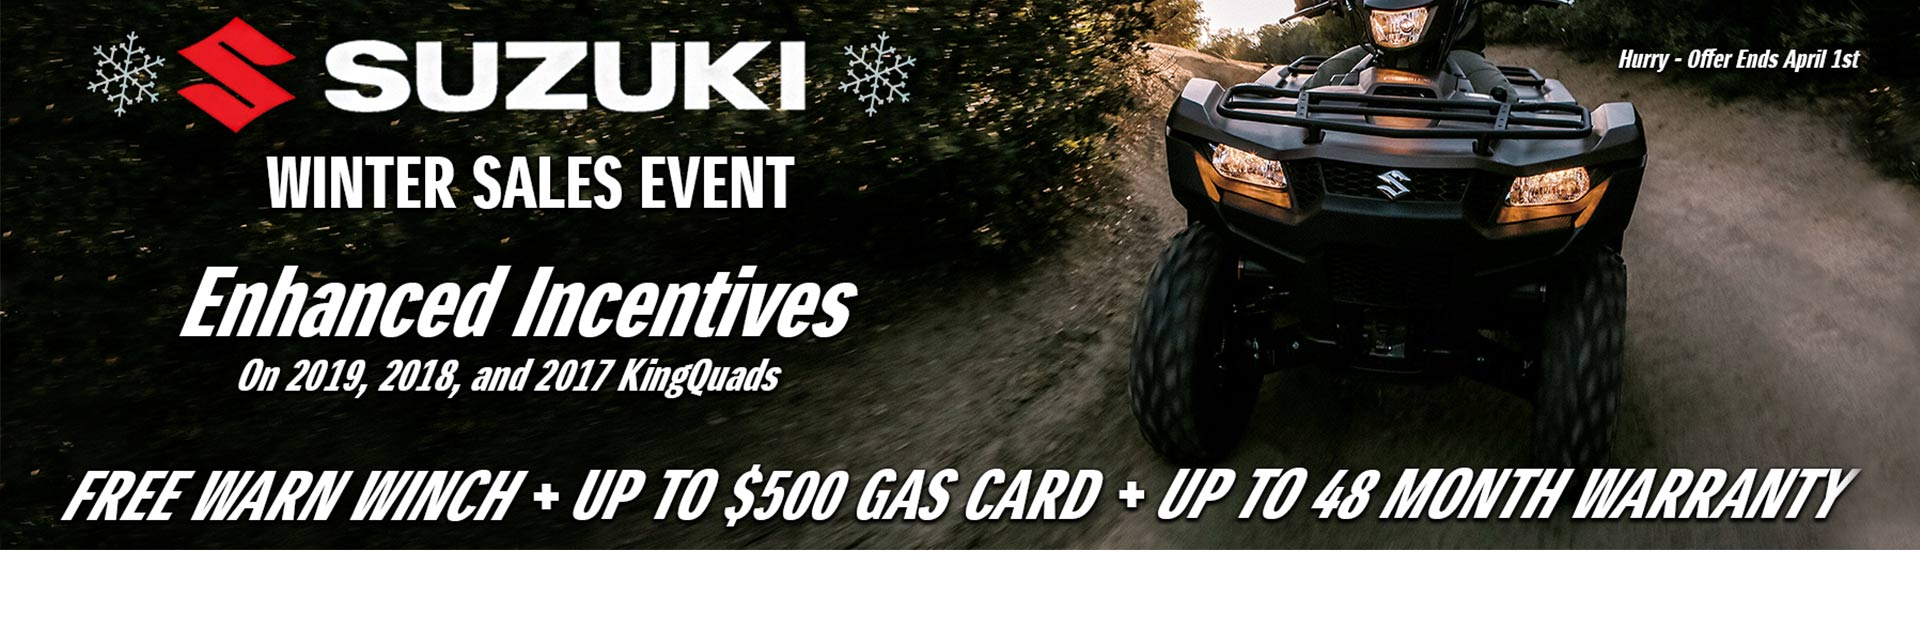 Suzuki: SUZUKI SHOW SEASON SALES EVENT - ATV